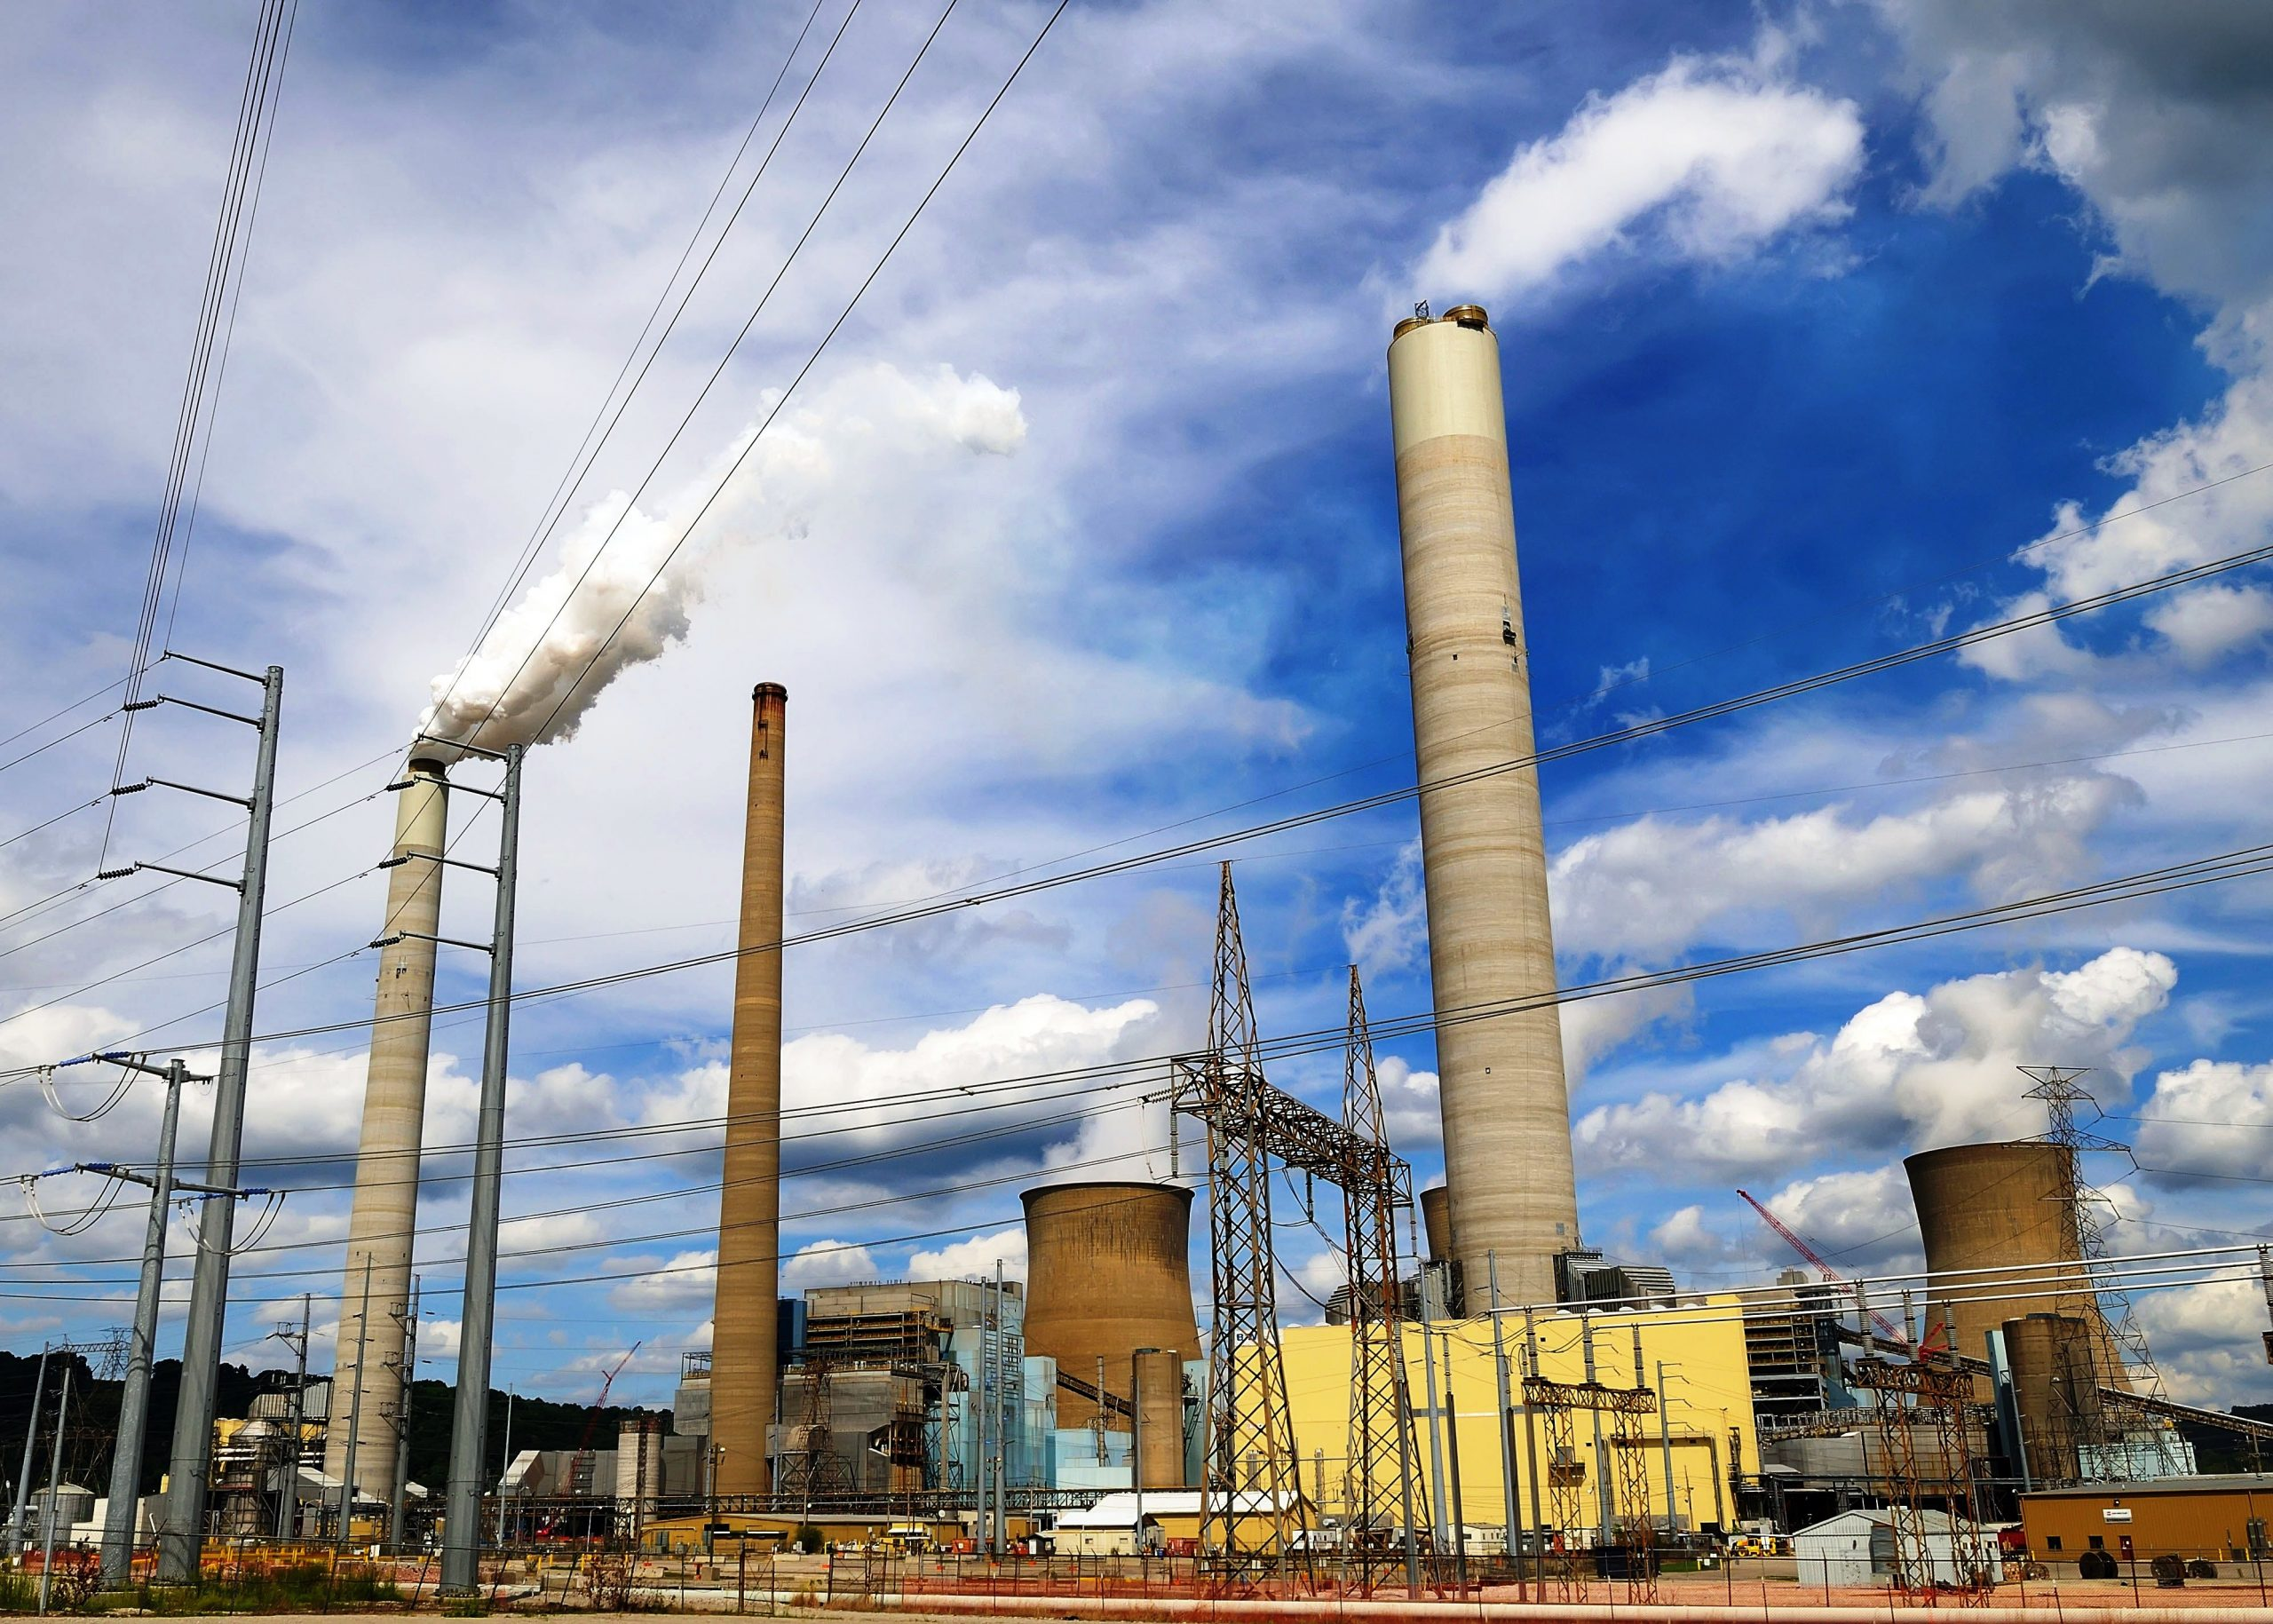 John E. Amos coal-fired power plant in West Virginia, owned and operated by Appa